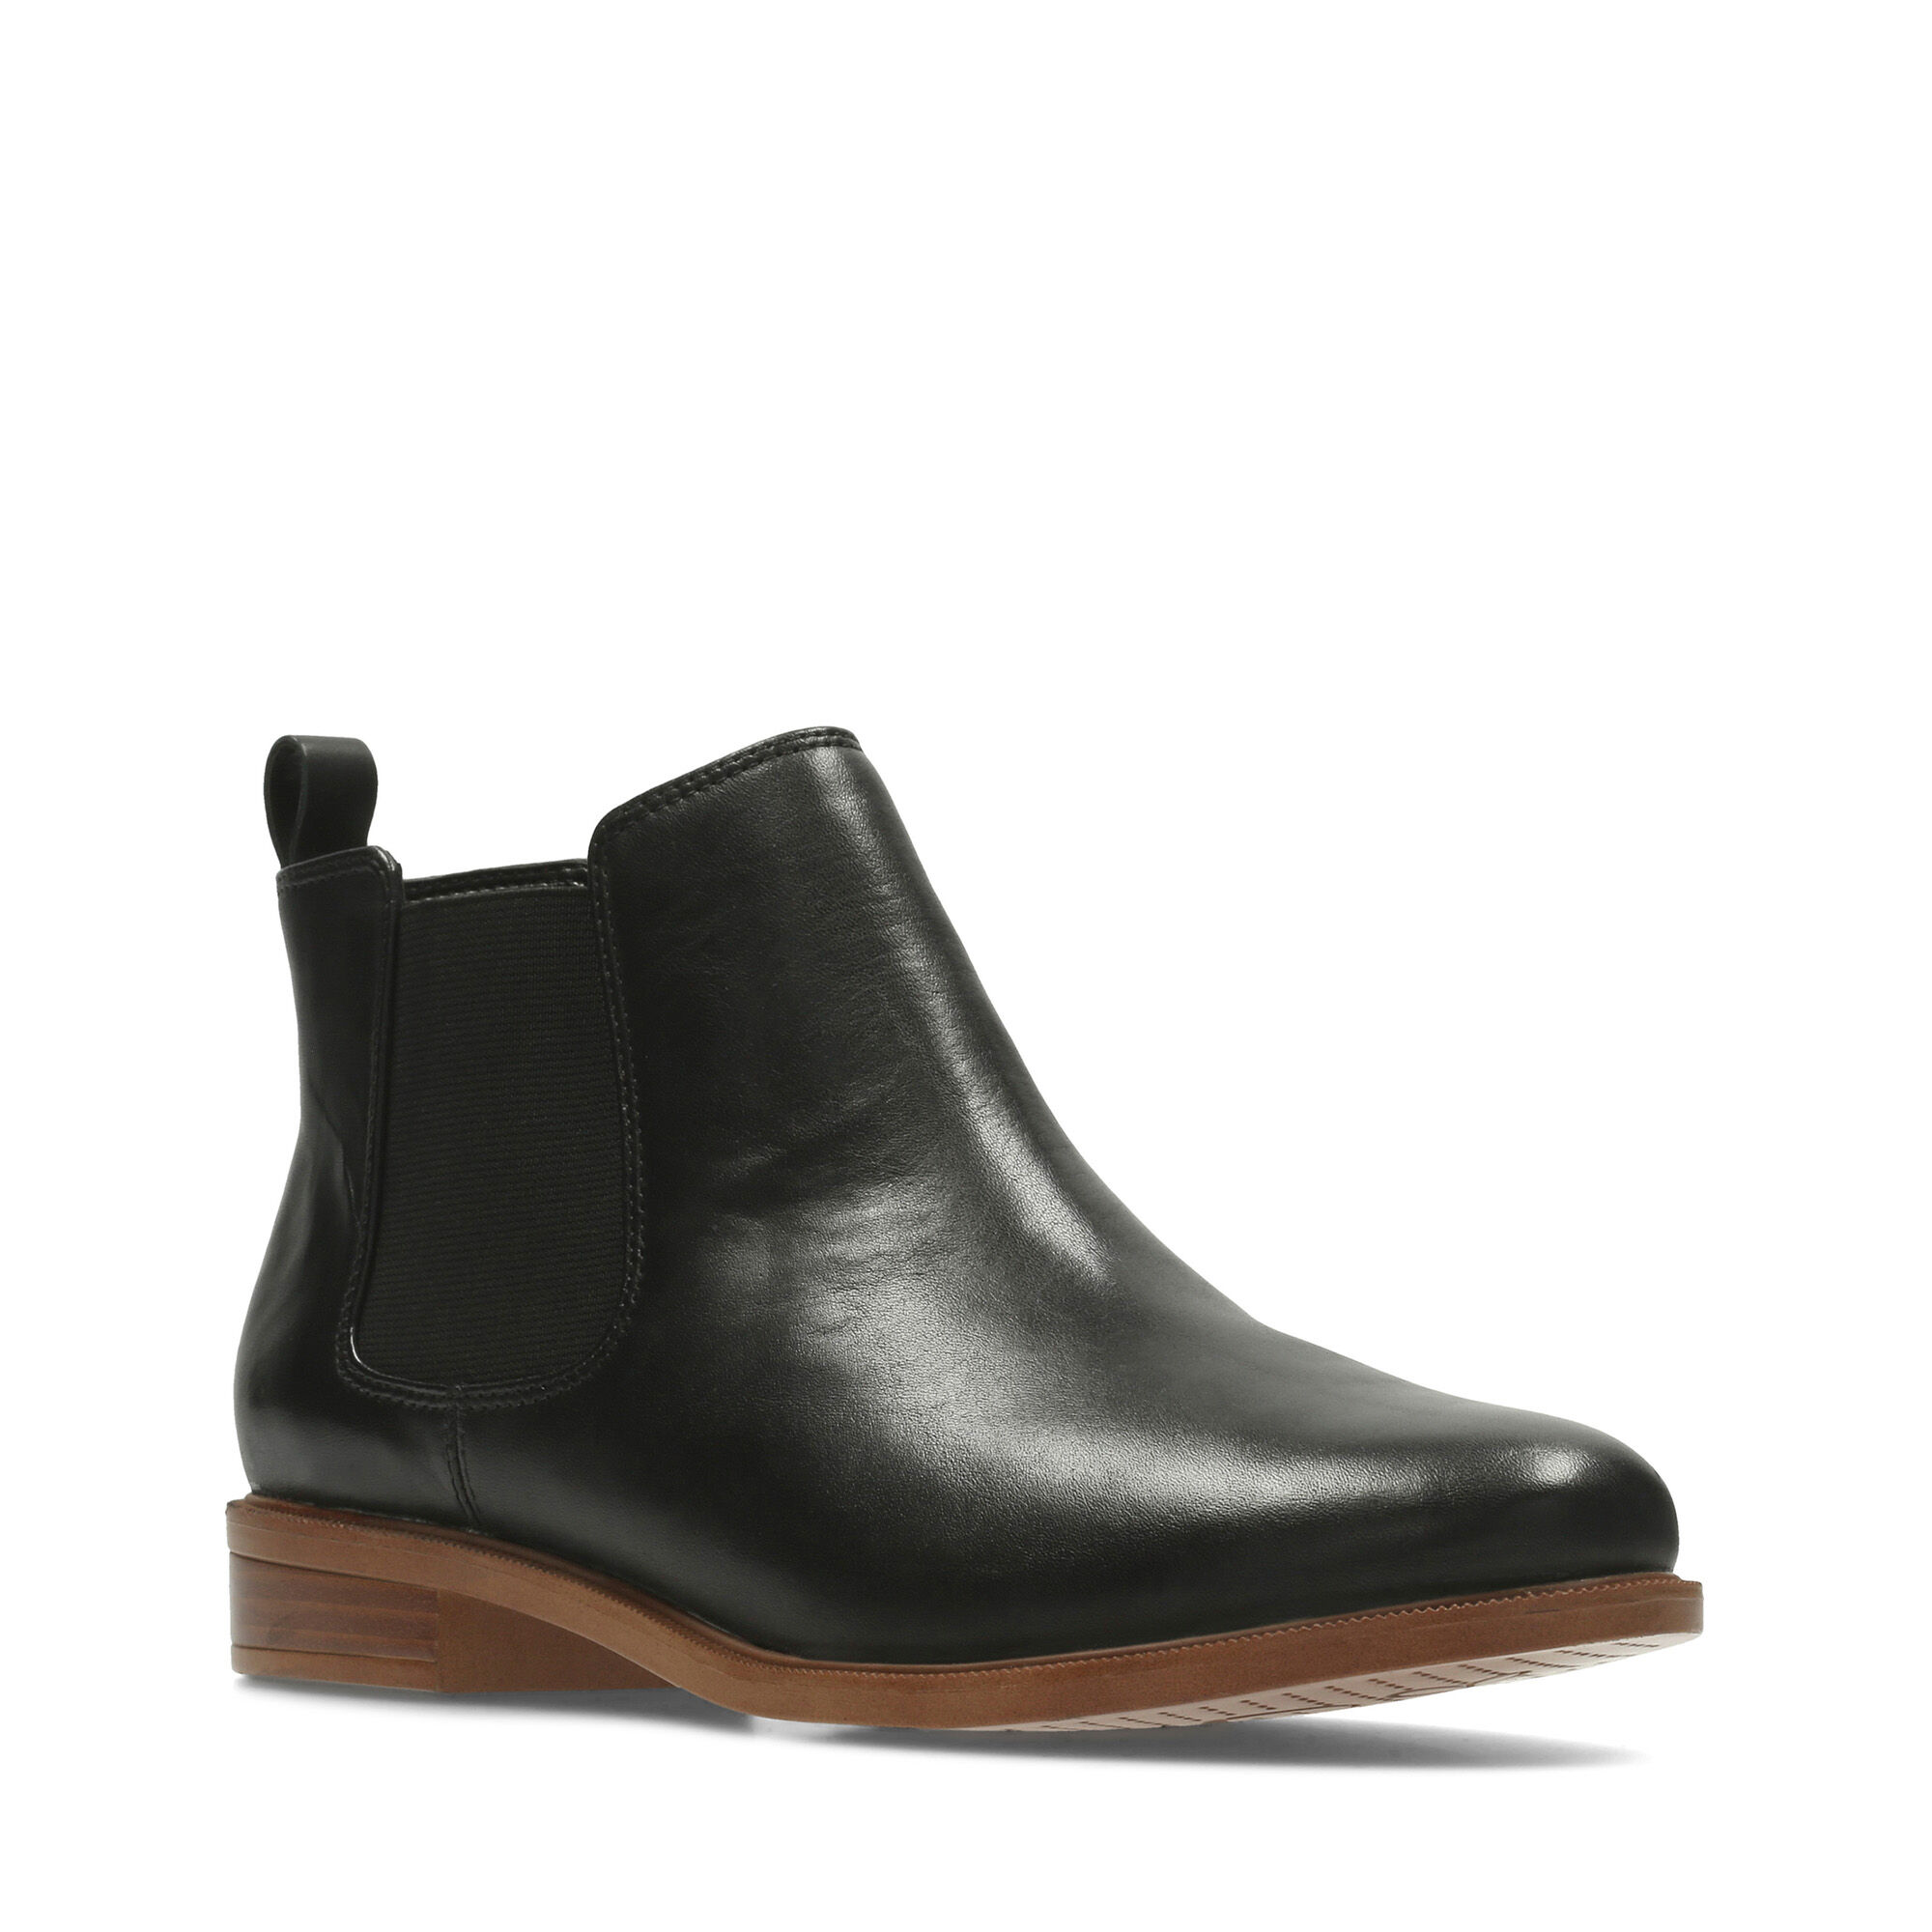 Women's Black Leather Chelsea Boots Taylor Shine | Clarks